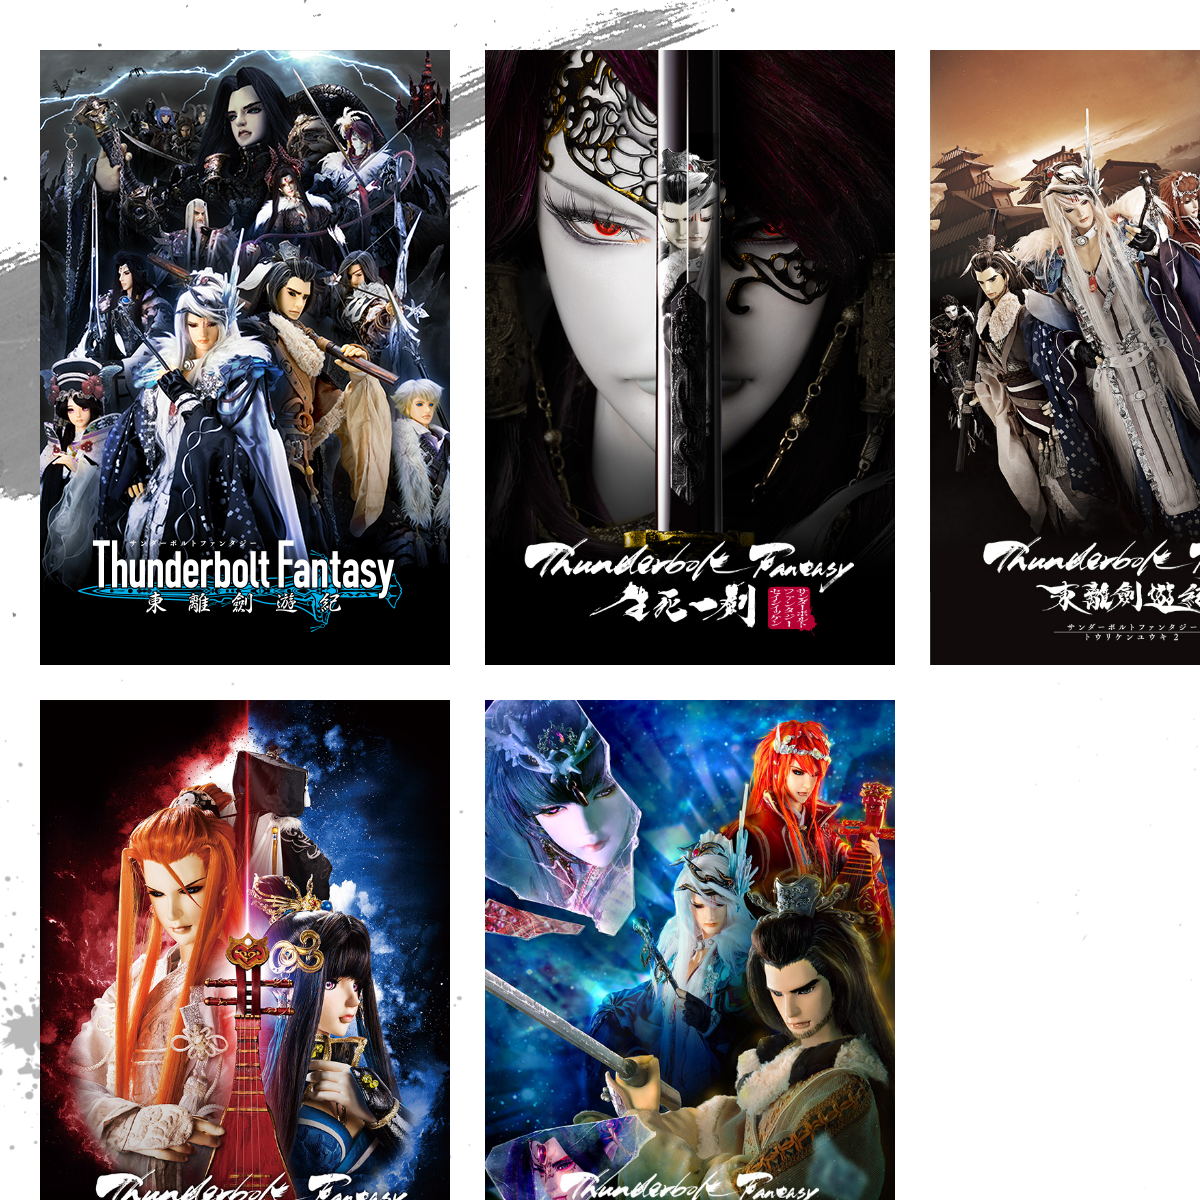 『Thunderbolt Fantasy Project』総合公式サイト